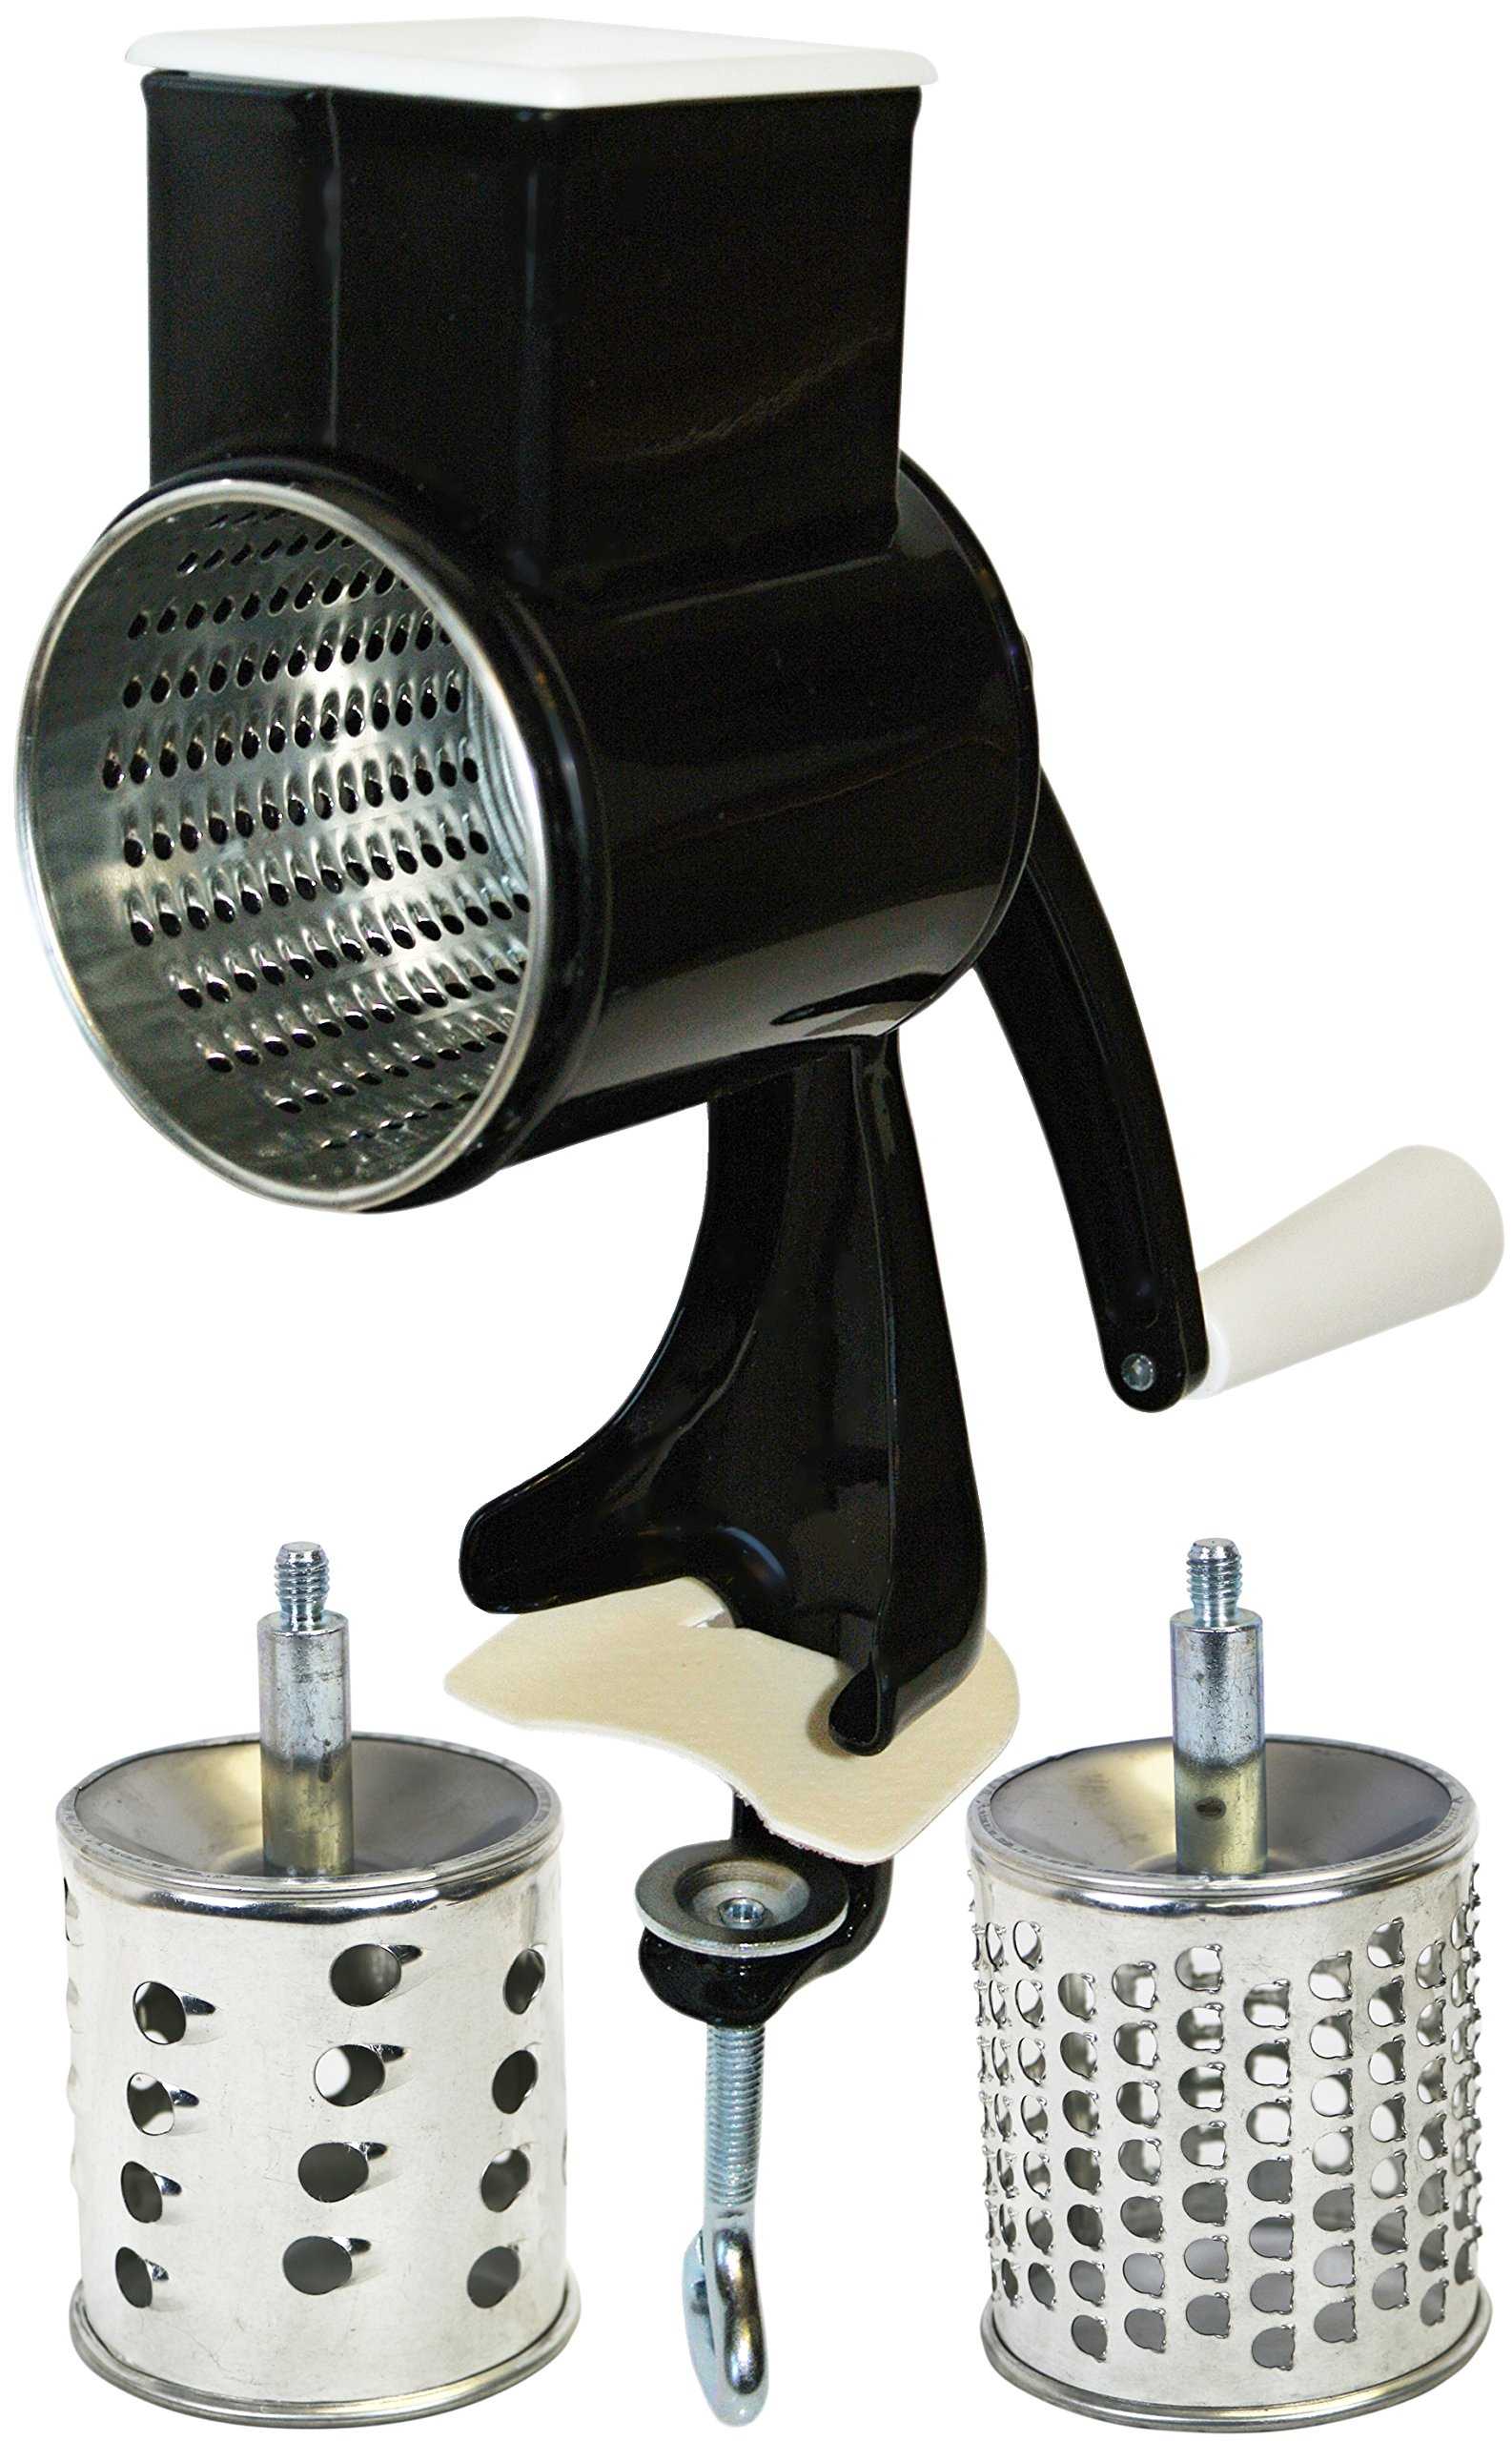 Reston Lloyd Multi Purpose Grater with 3 Stainless Steel Grating Barrels, Table Clamp, Black